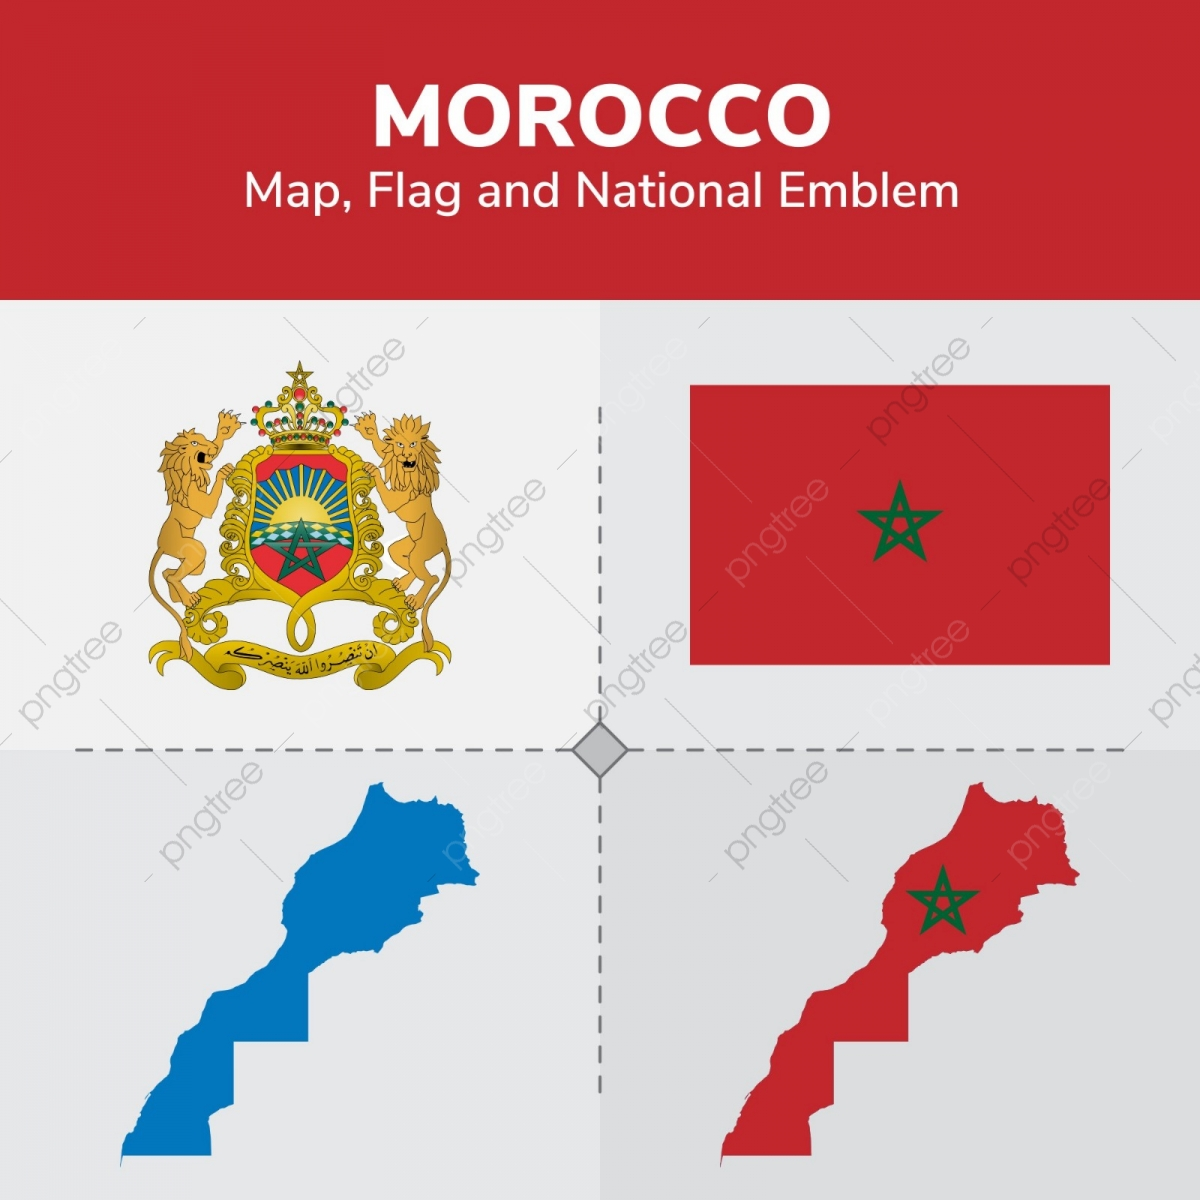 Morocco Map, Flag And National Emblem, Continents, Countries, Map